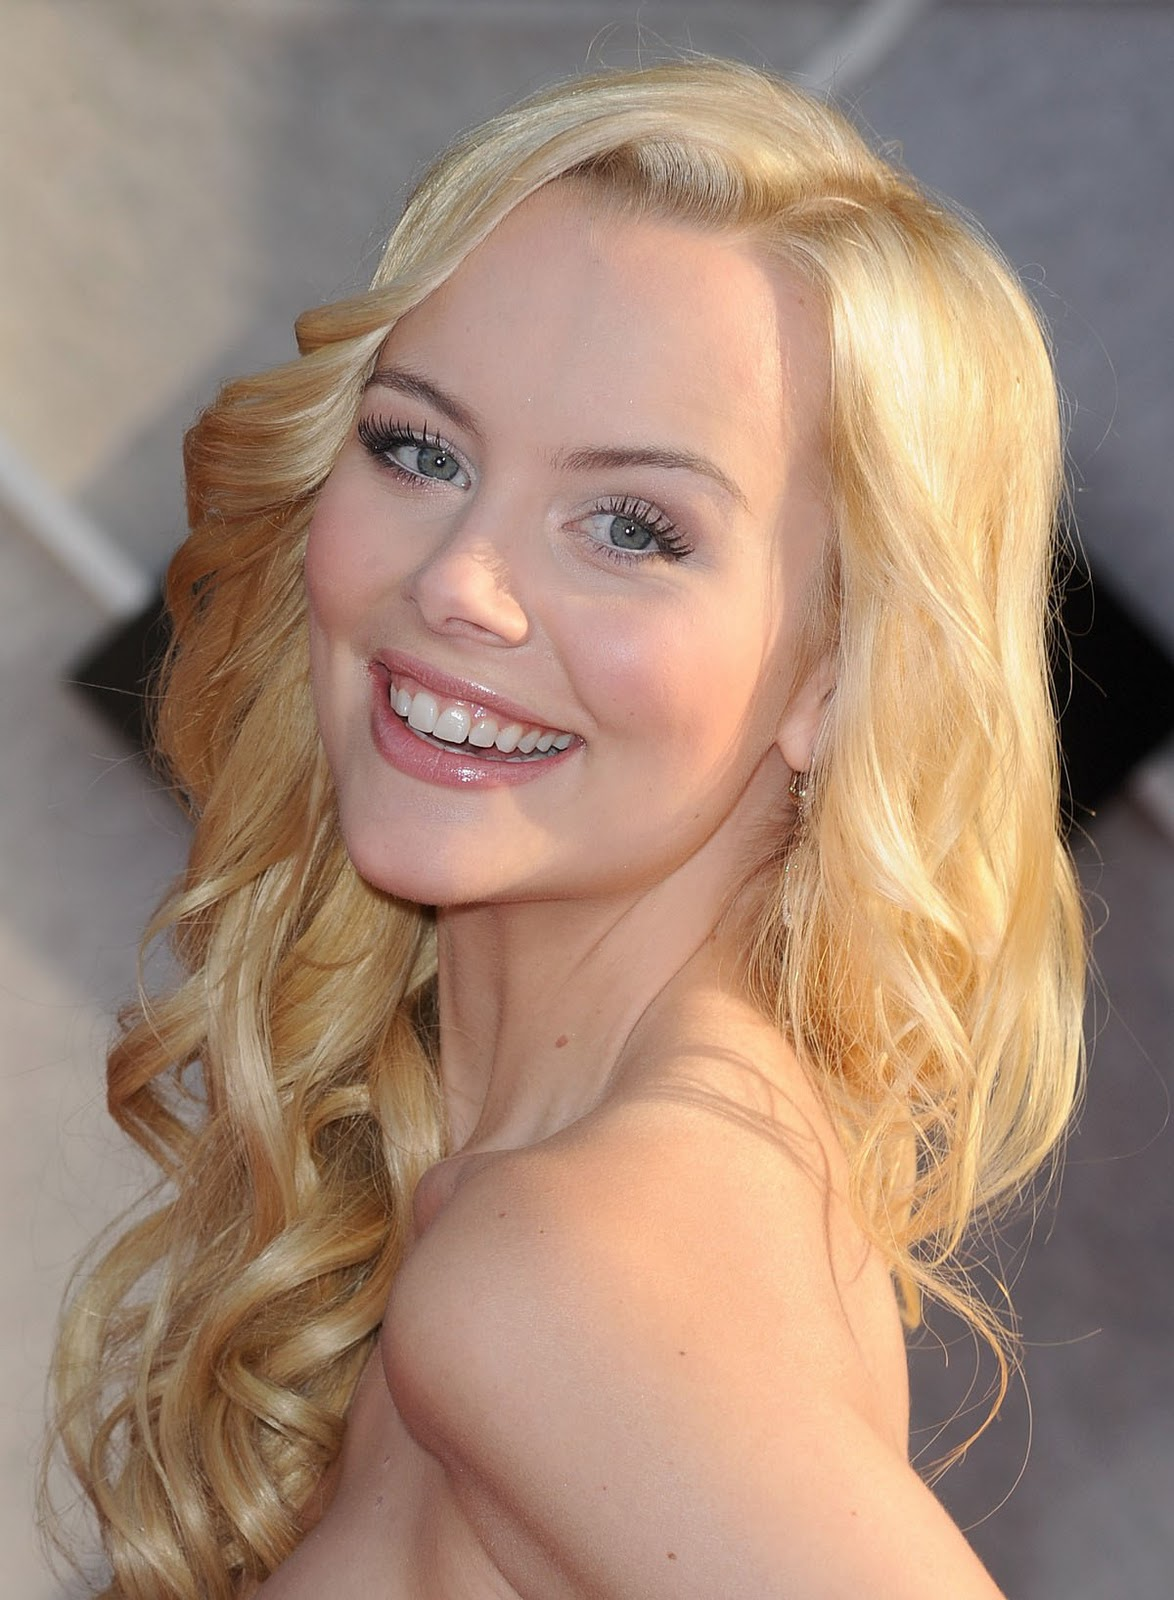 Helena Mattsson, pictures, photos, images - An amazing